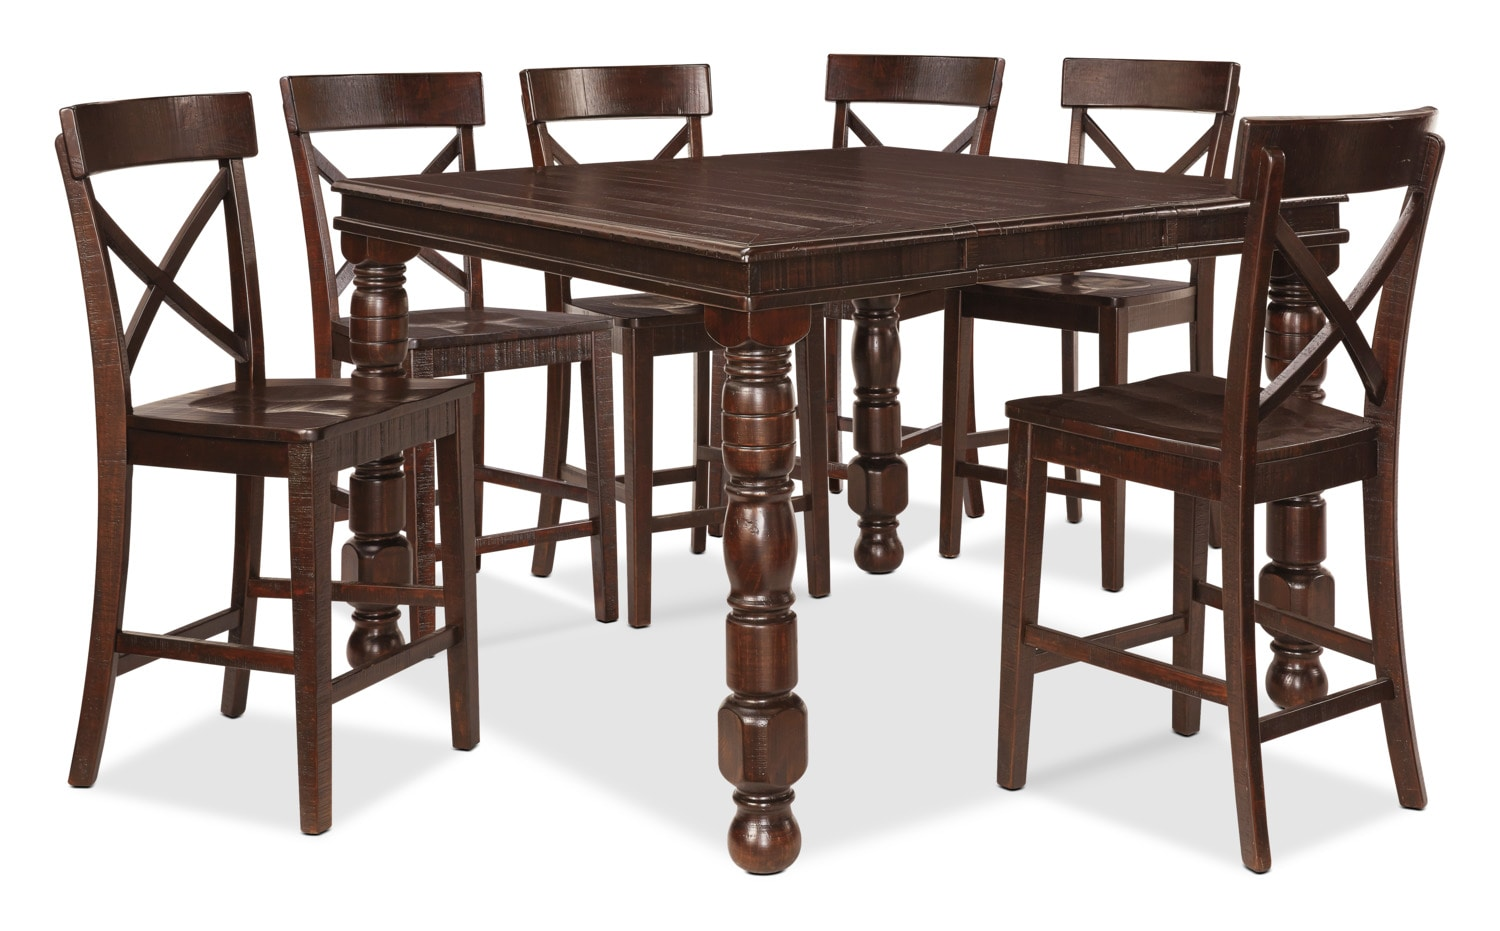 Dining Room Furniture - Gerlane 7-Piece Counter-Height Dining Package